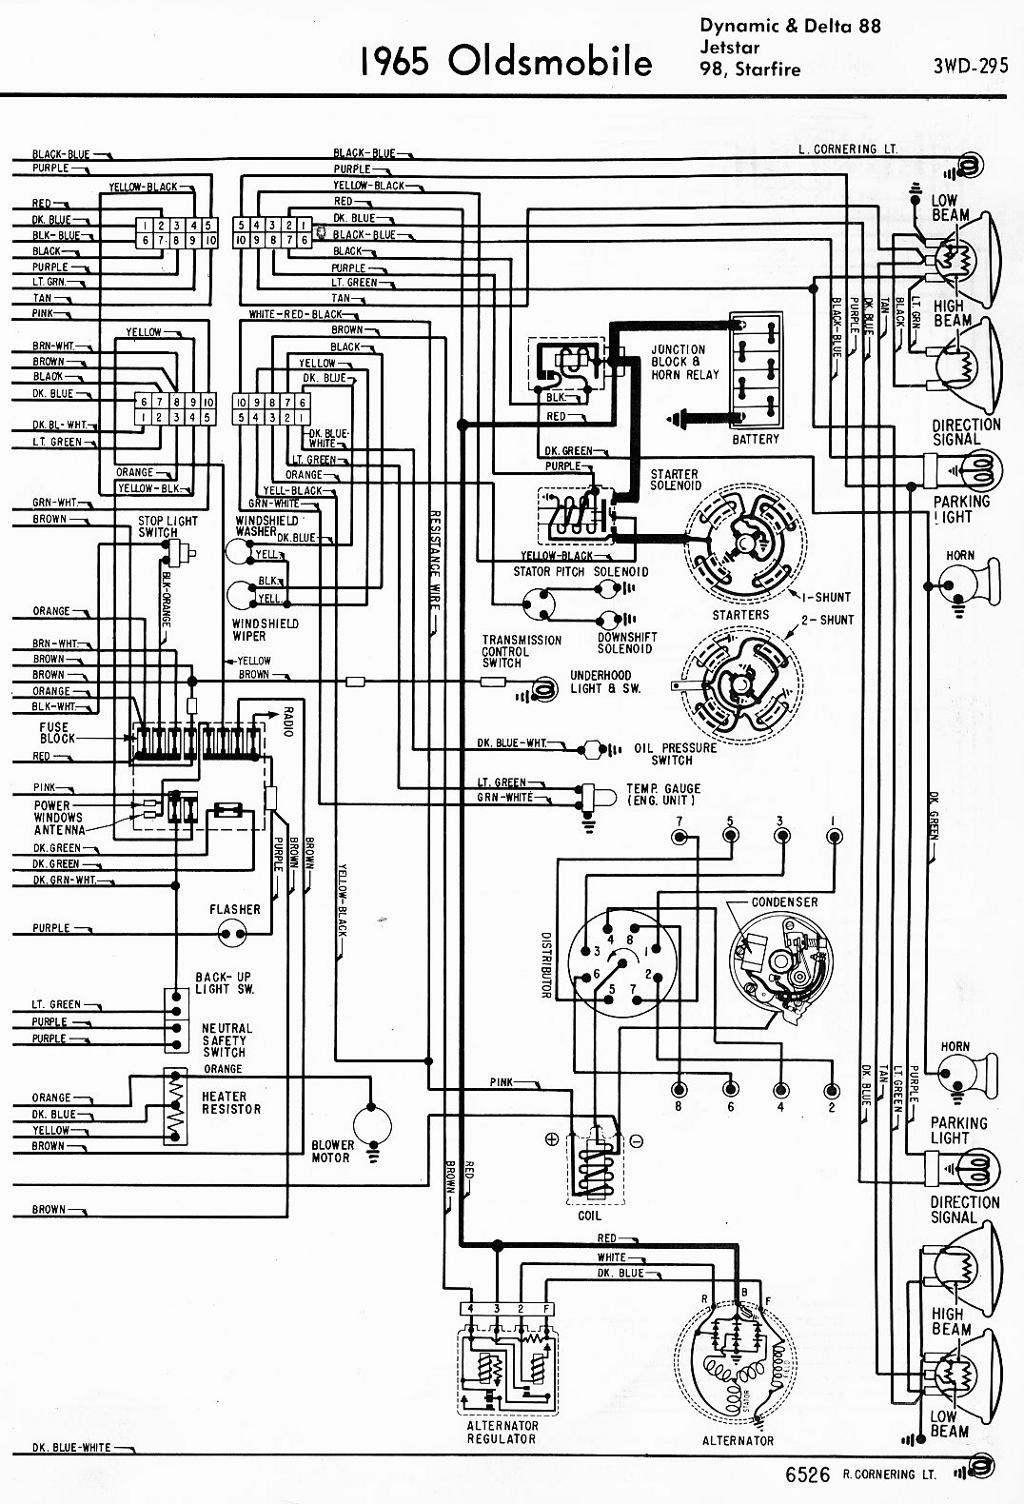 2003 alero wiring diagram free picture schematic wiring diagram